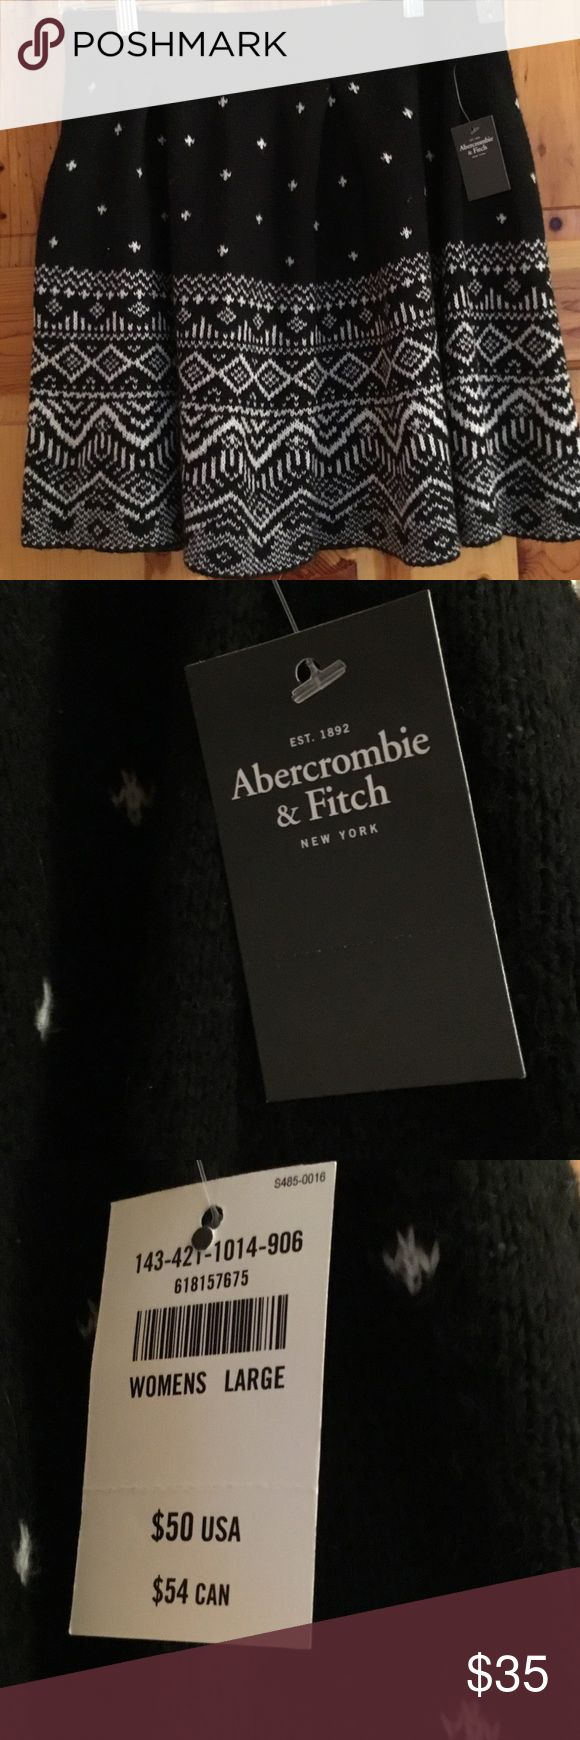 WEEKEND SALE NWT $50 ABERCROMBIE AND FITCH SKIRT BRAND NEW WITH TAGS ADORABLE ABERCROMBIE AND FITCH SWEATER SKIRT. FAIR ISLE DESIGN. This will be perfect with cable knit tights and a cardigan. Great for a Holiday Party! Never worn in MINT CONDITION. FROM MY CLEAN NON SMOKING HOME. Check out my other items as I am cleaning out closets and listing a lot of good stuff! Thanks for looking. I do bundle. Abercrombie & Fitch Skirts